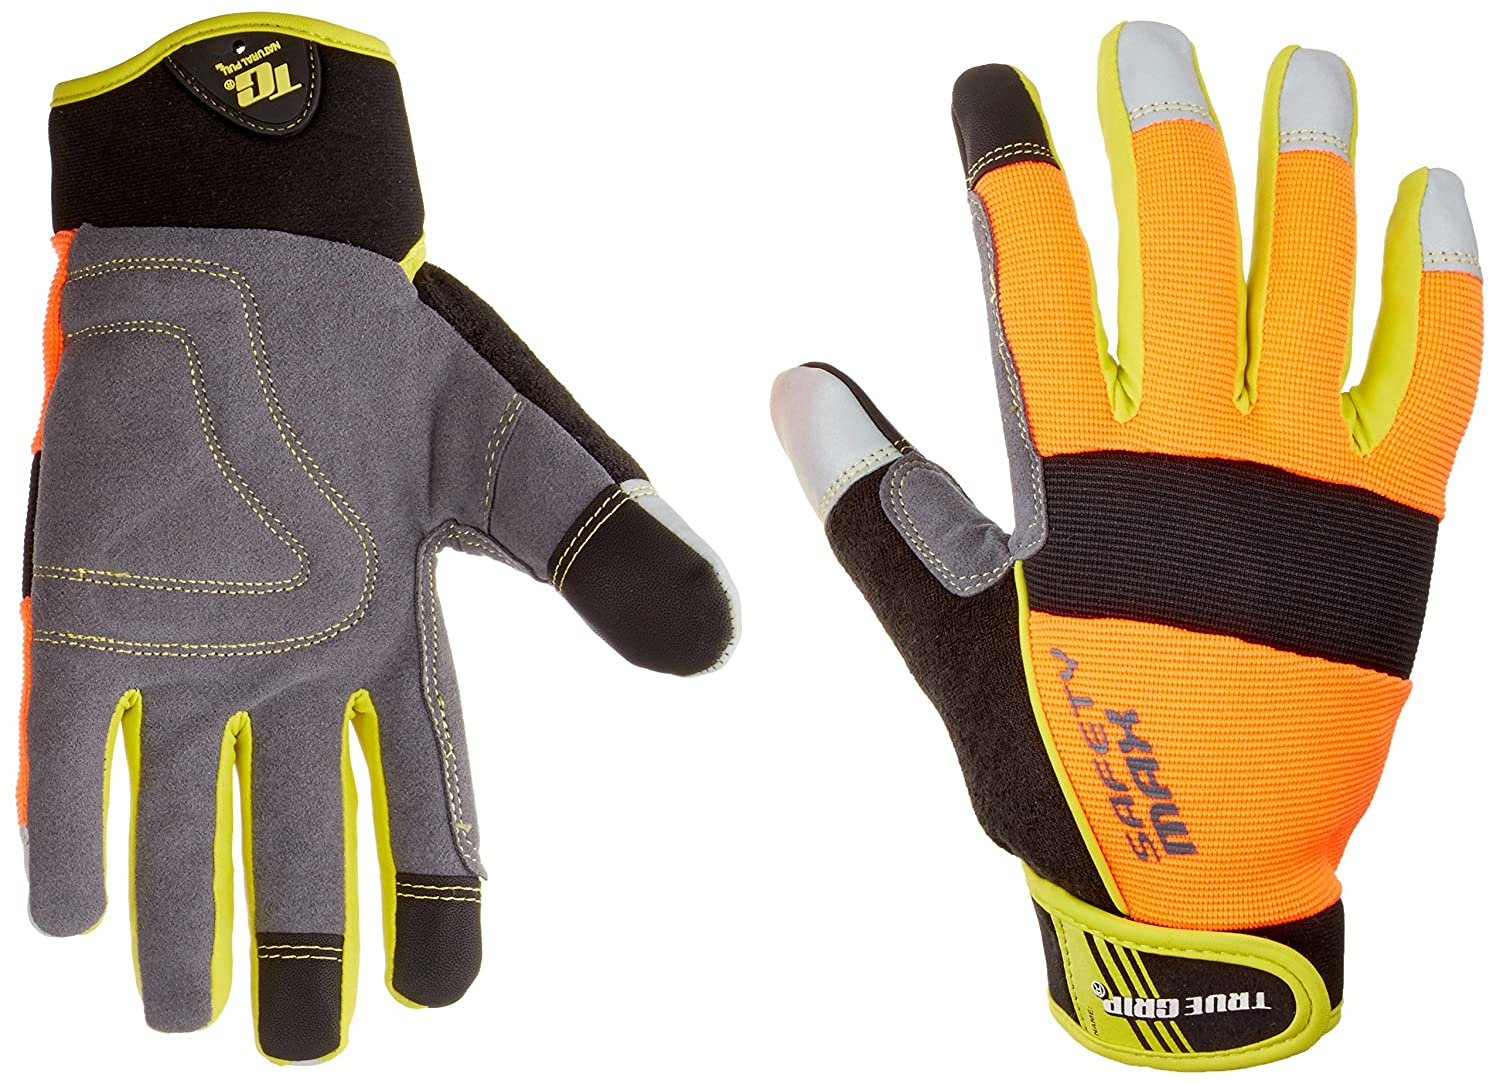 True Grip 9843-23 Large Safety Max Gloves with Touchscreen Fingers - Orange/Black